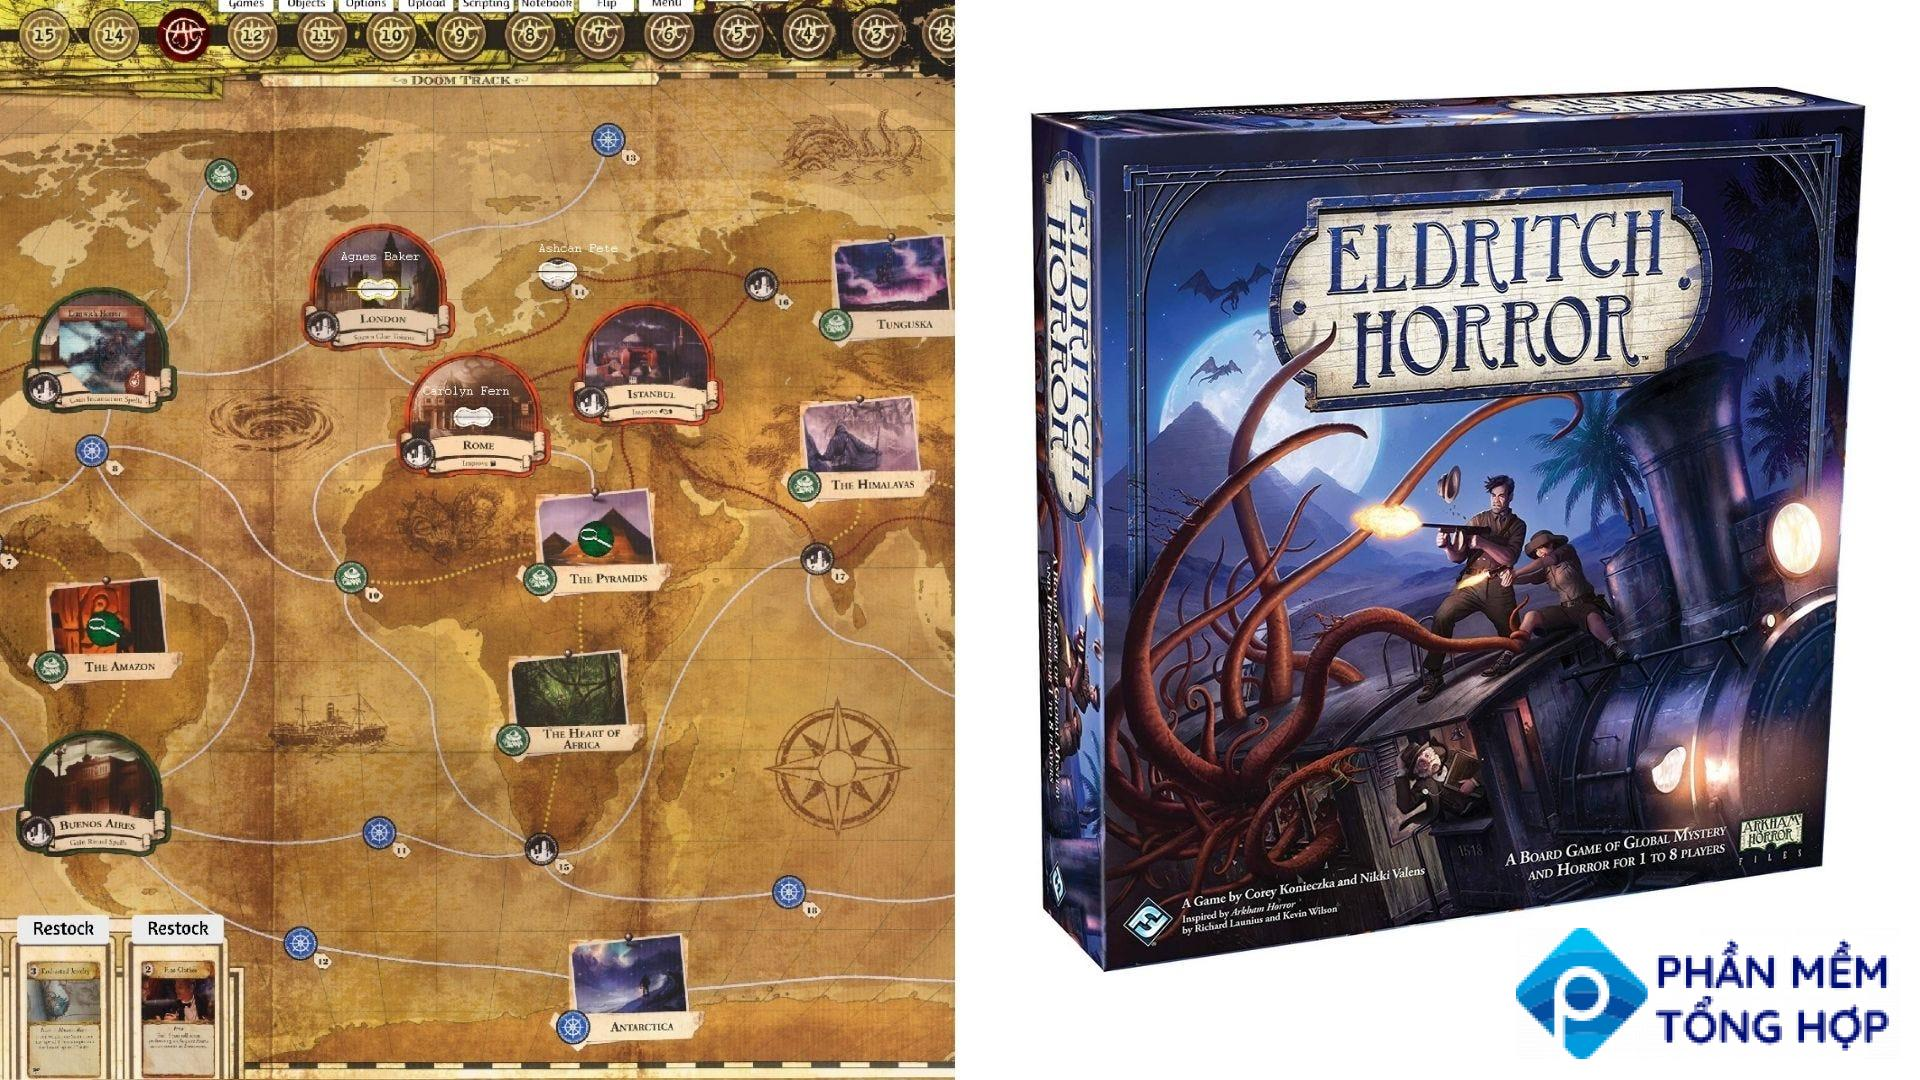 The board and game box for 'Eldritch Horror'